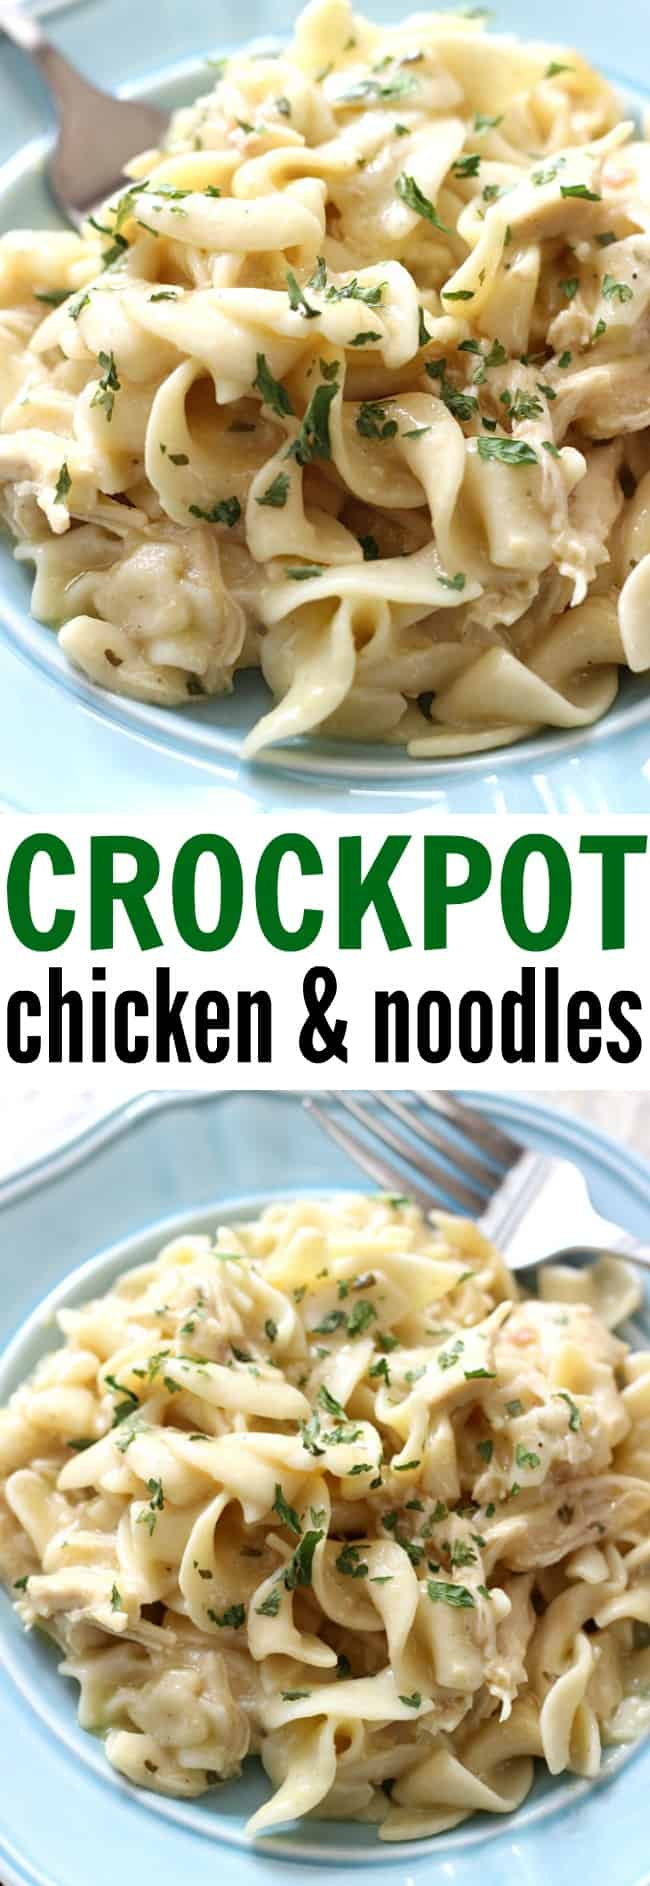 Crockpot Chicken And Noodles Belle Of The Kitchen